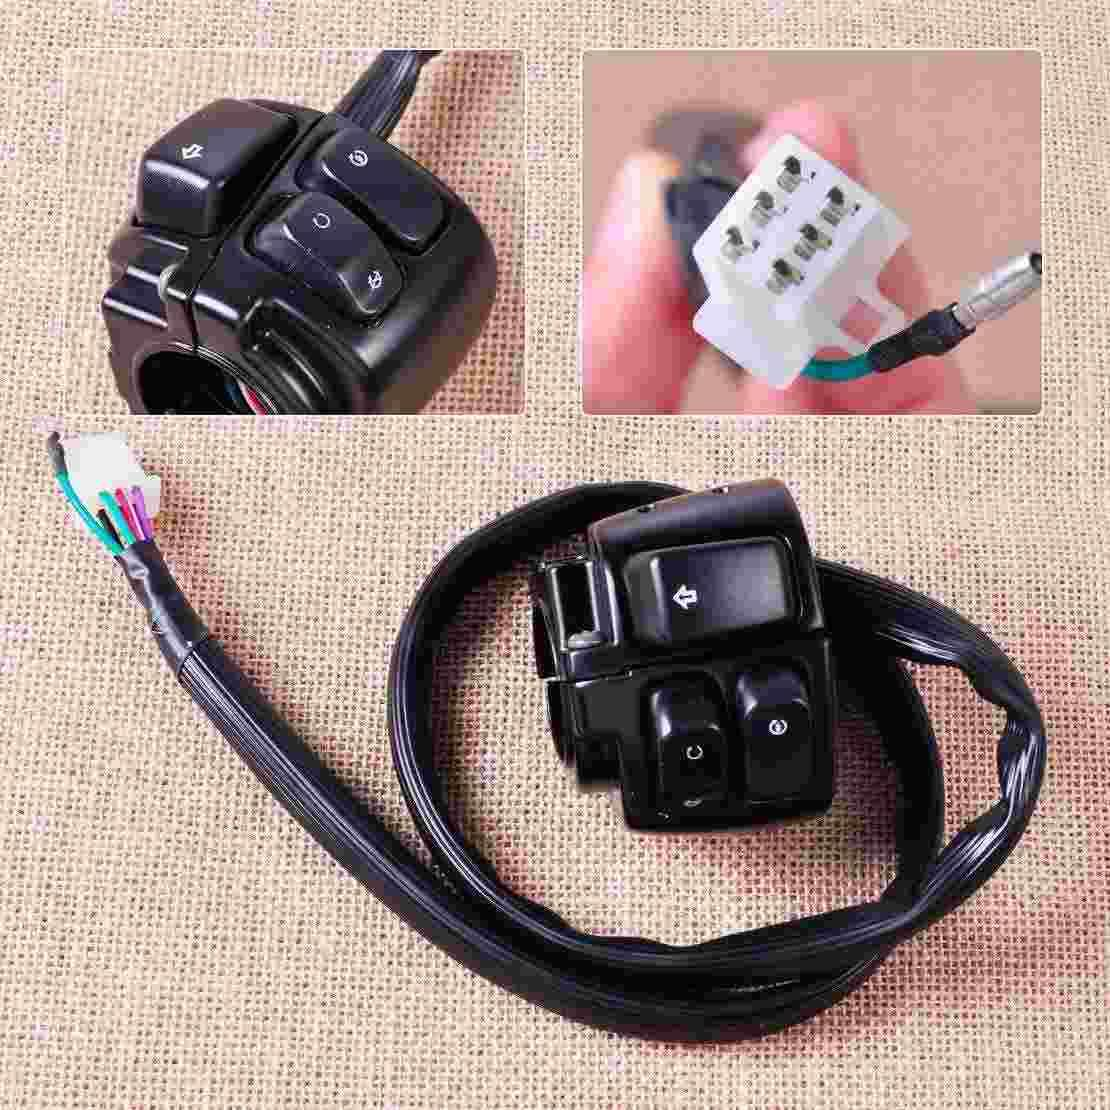 98f982b4725 Motorcycle 1 Handlebar Ignition Turn Signal Switch Wiring Harness ...